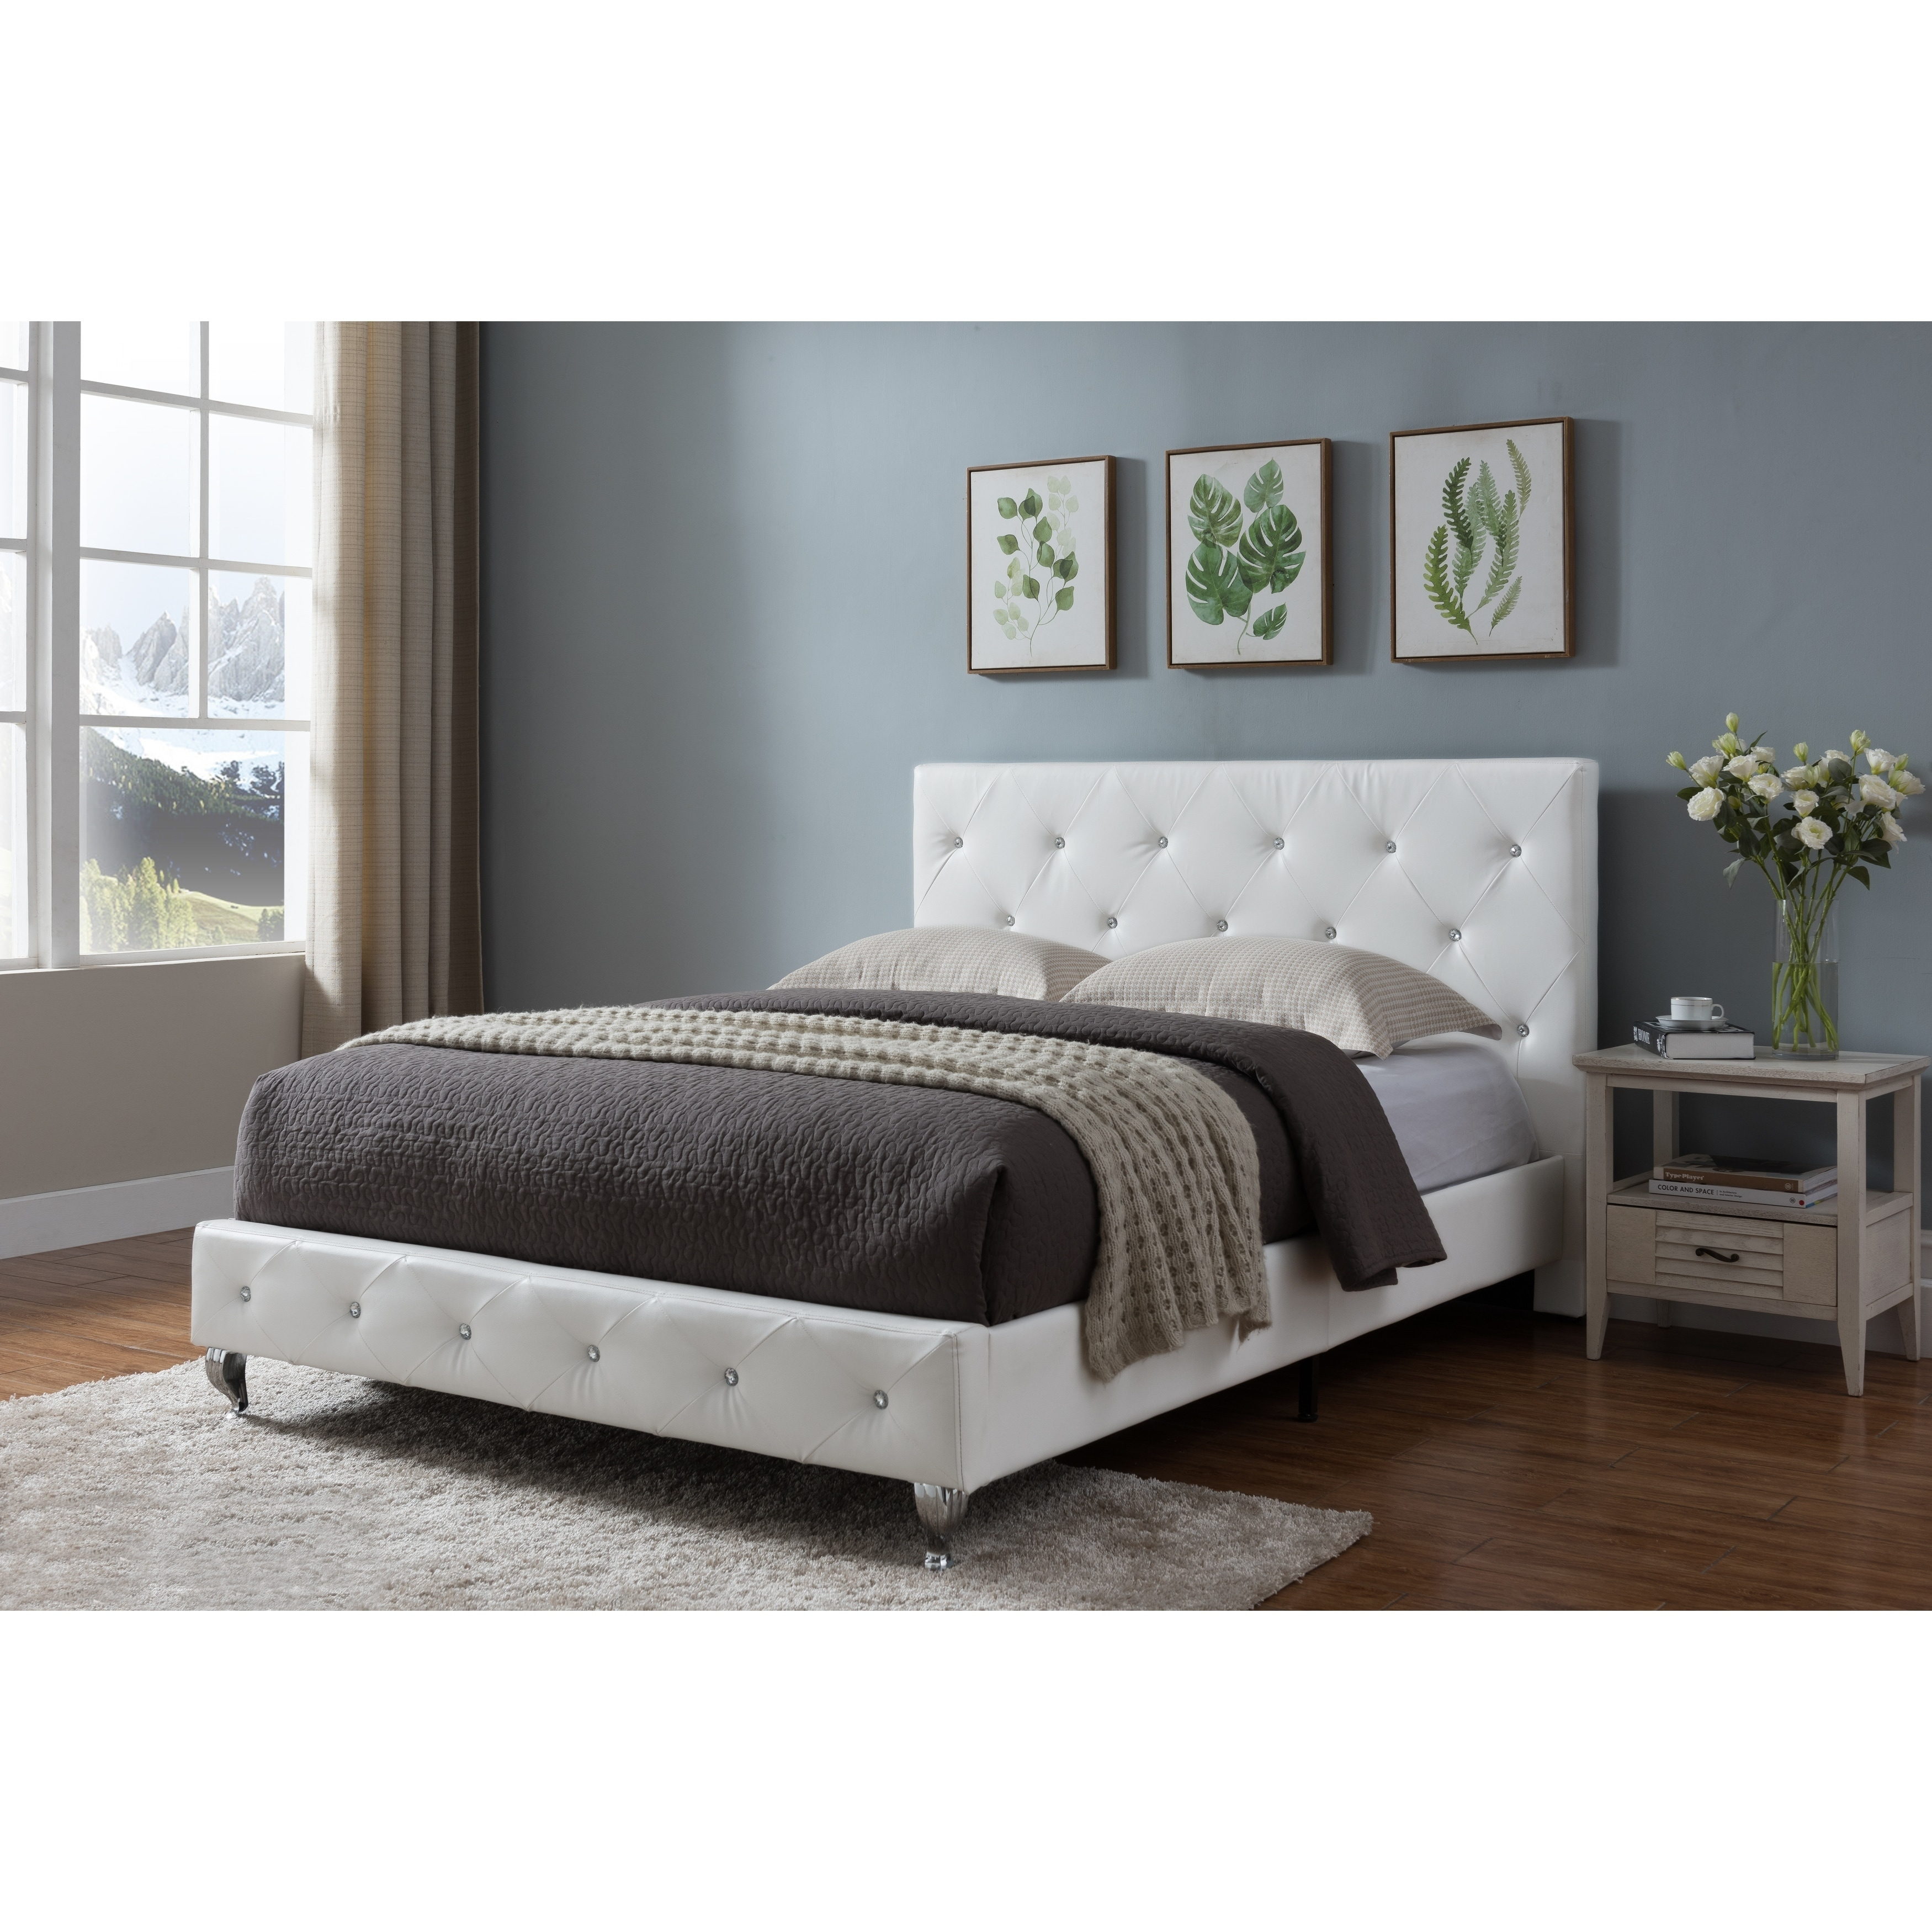 King Size Upholstered Beds White Faux Leather Overstock 24240107